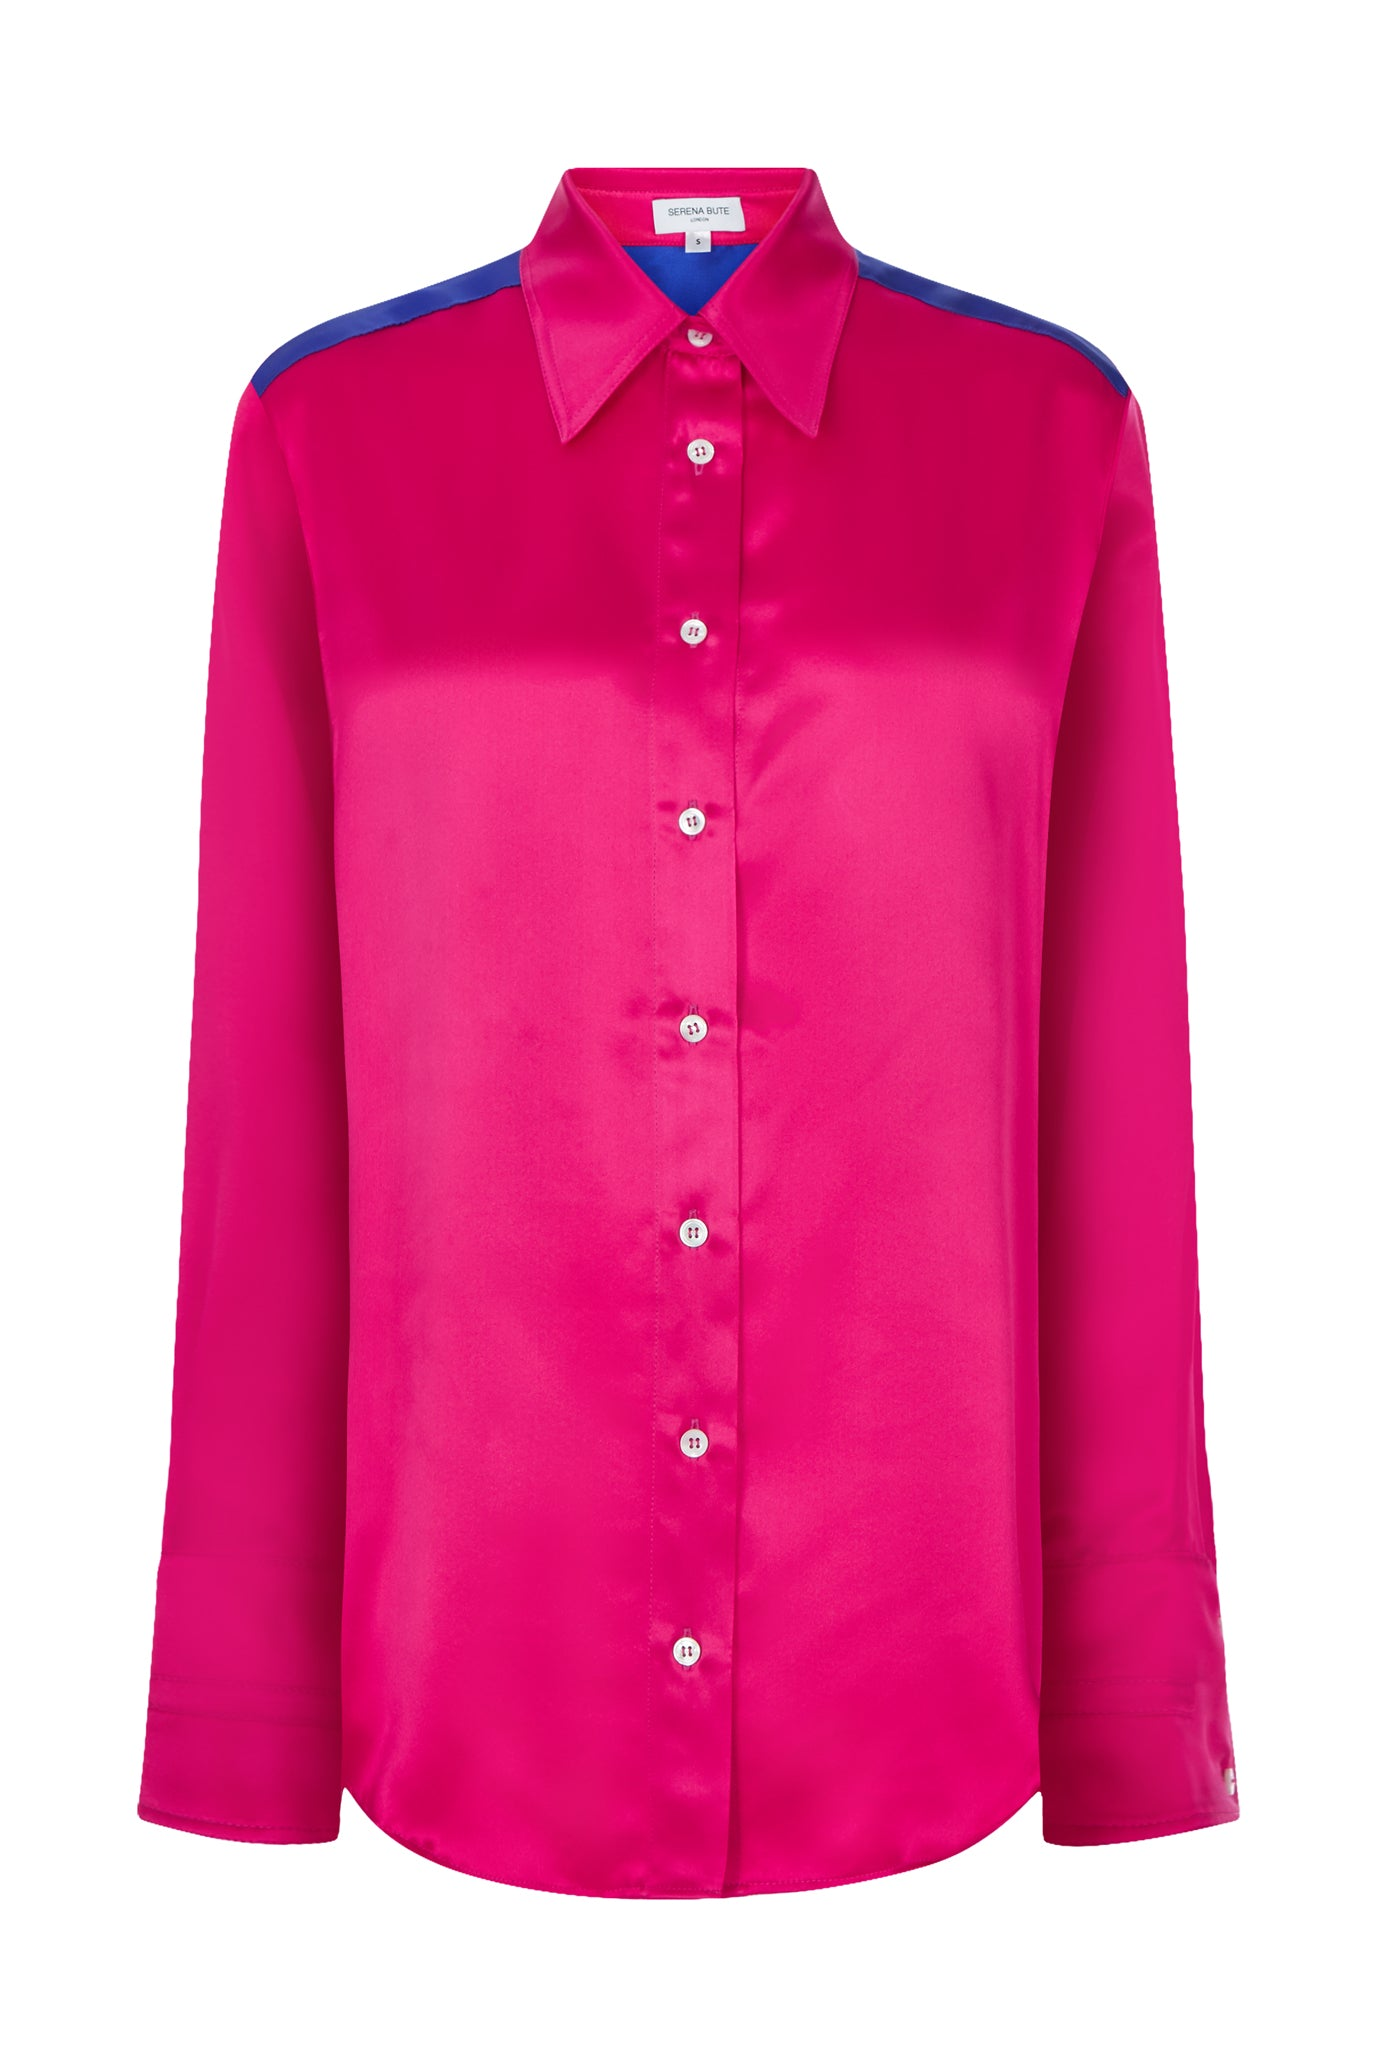 The oversized shirt sapphire and pink silk